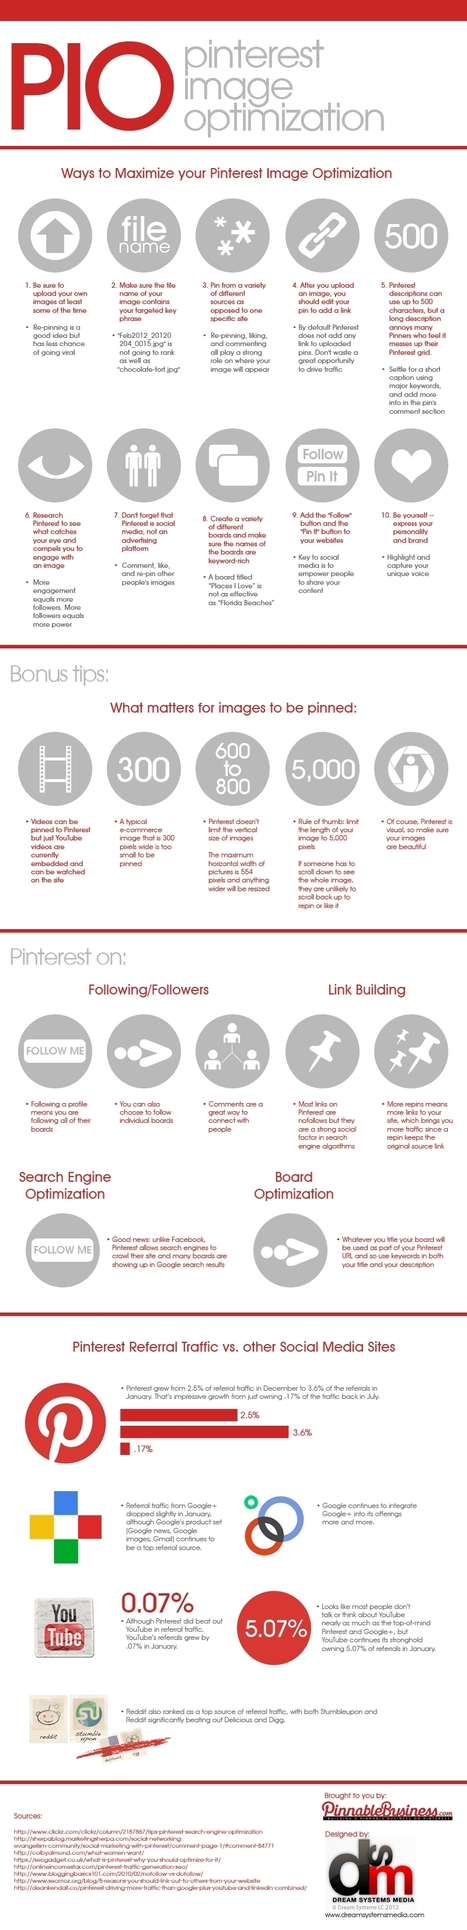 Pinterest Image Optimization [Infographic] | iEduc | Scoop.it